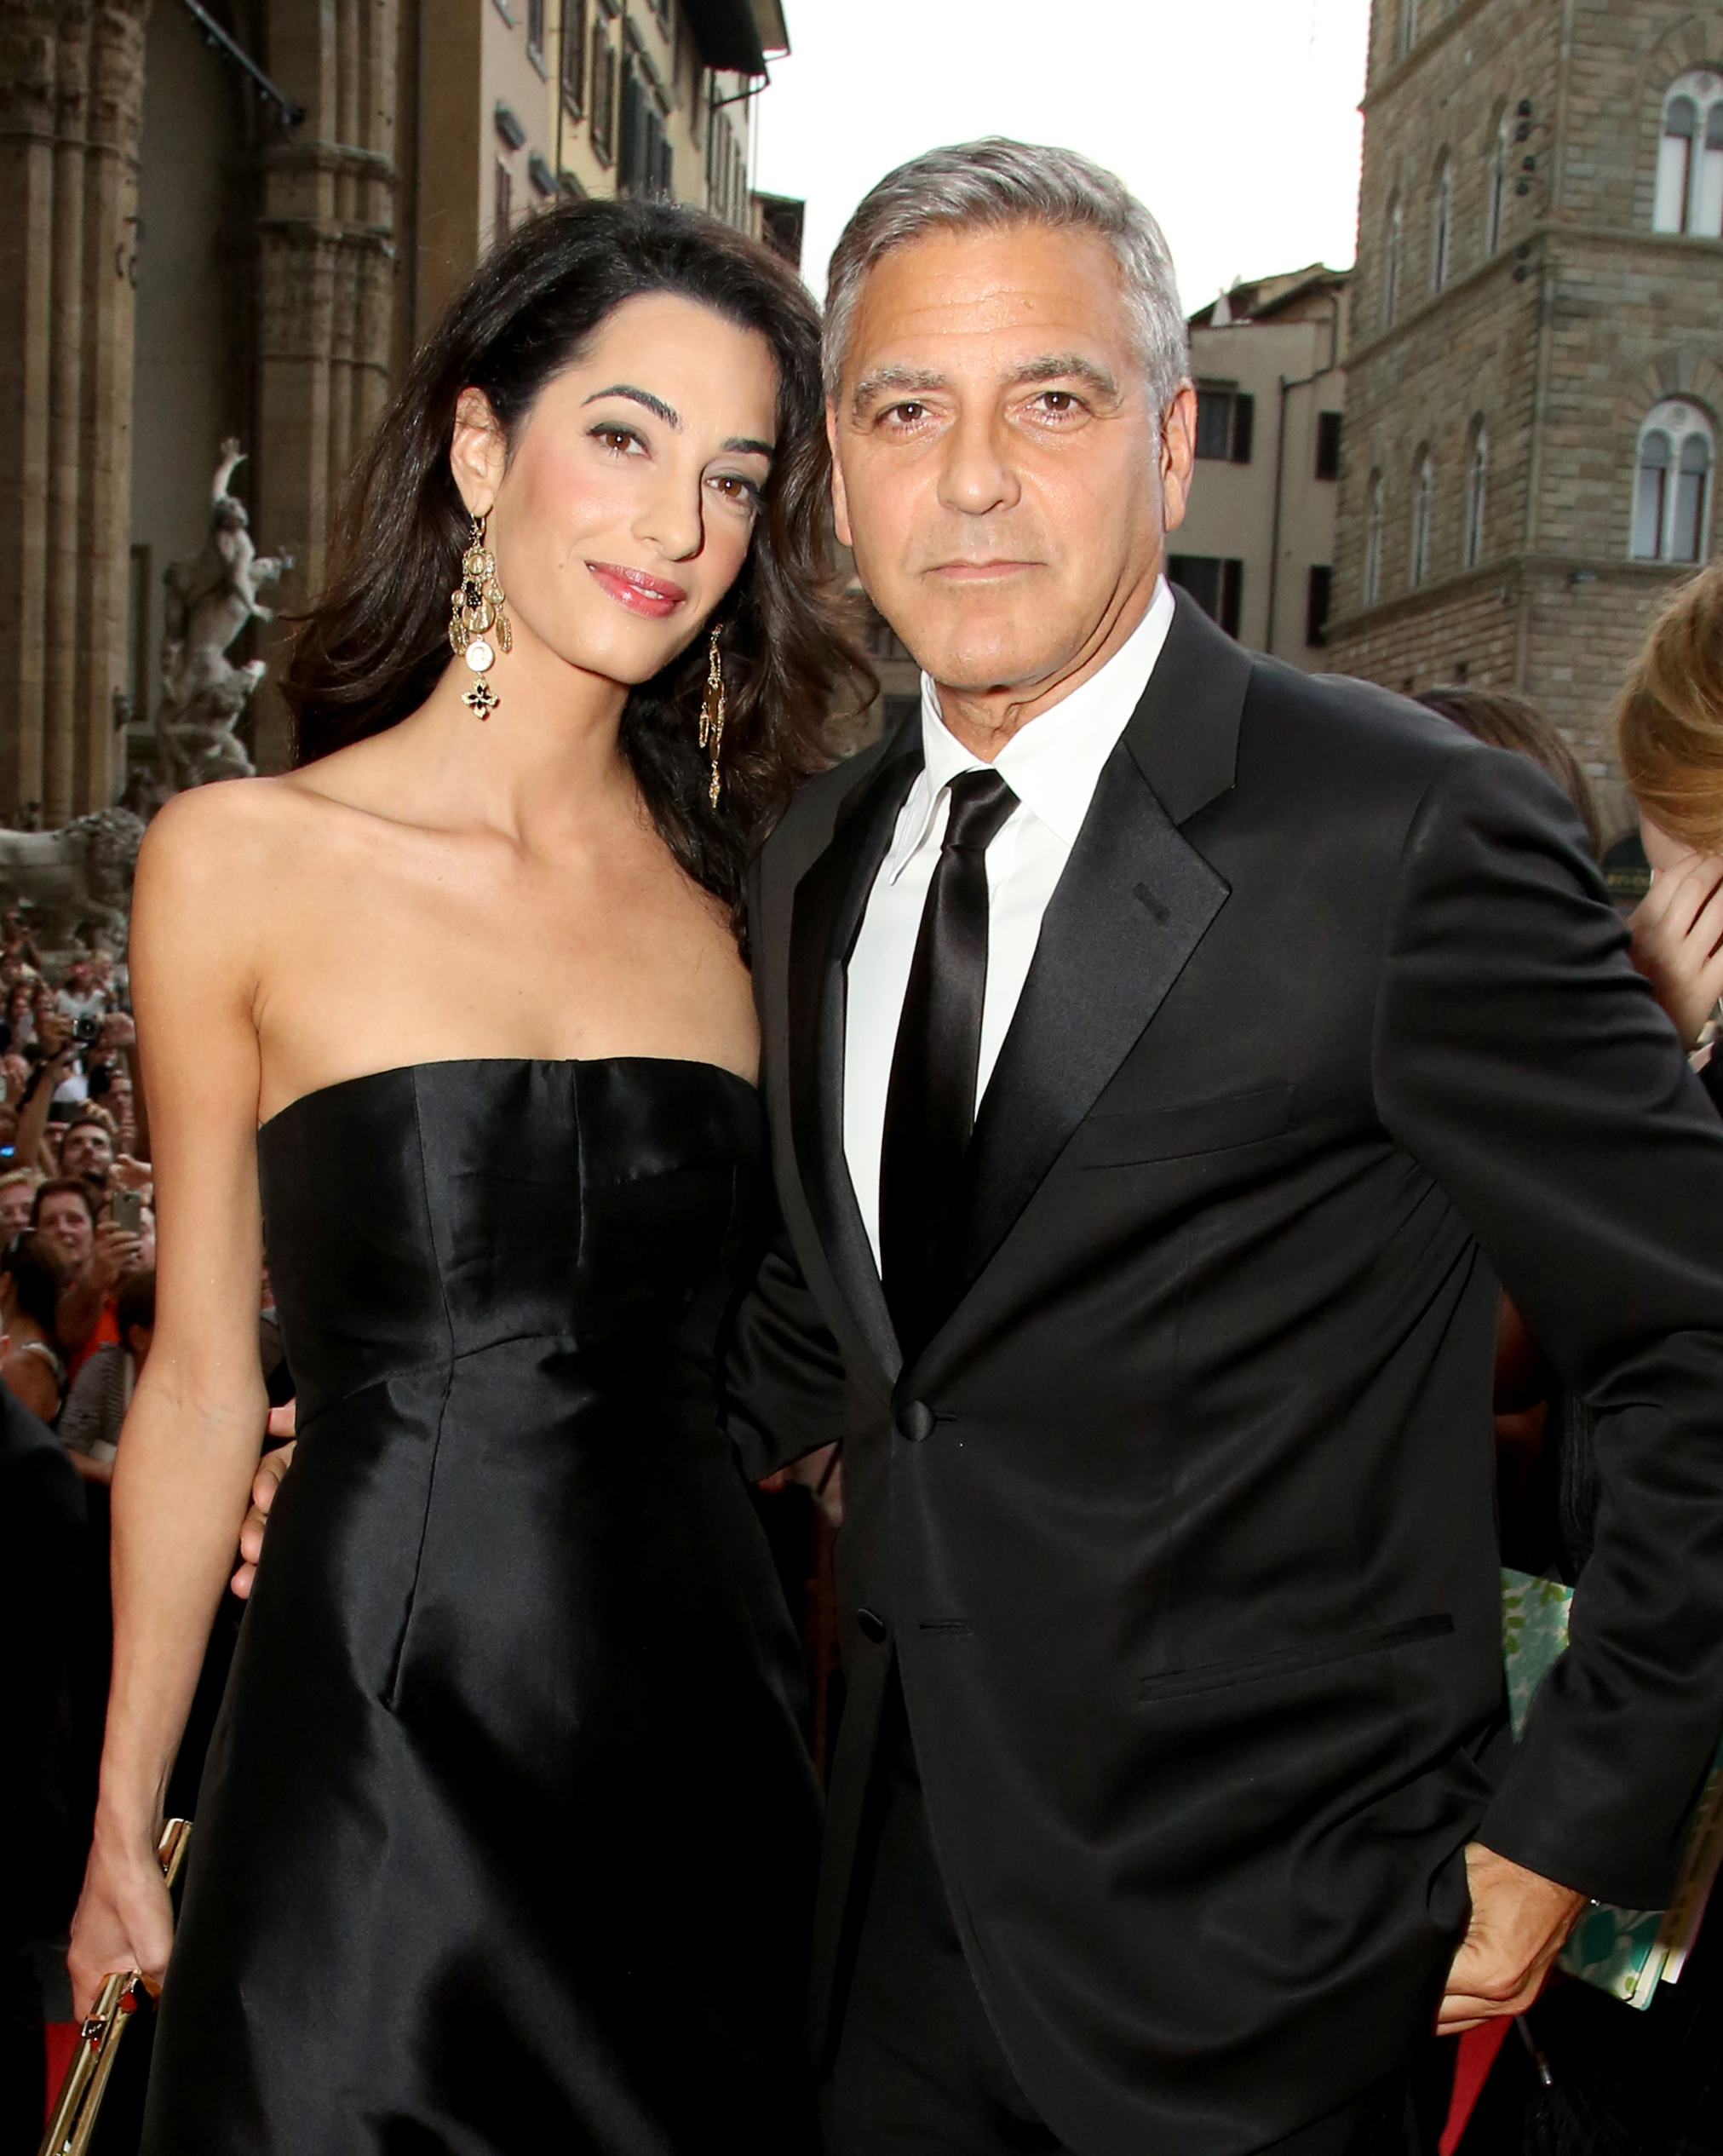 George Clooney to Amal Clooney